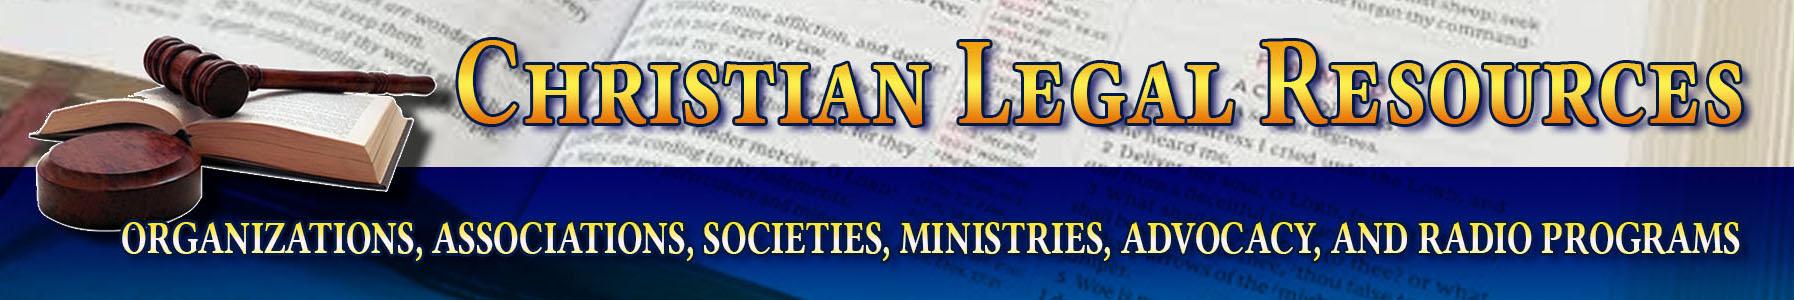 Christian Legal Resources